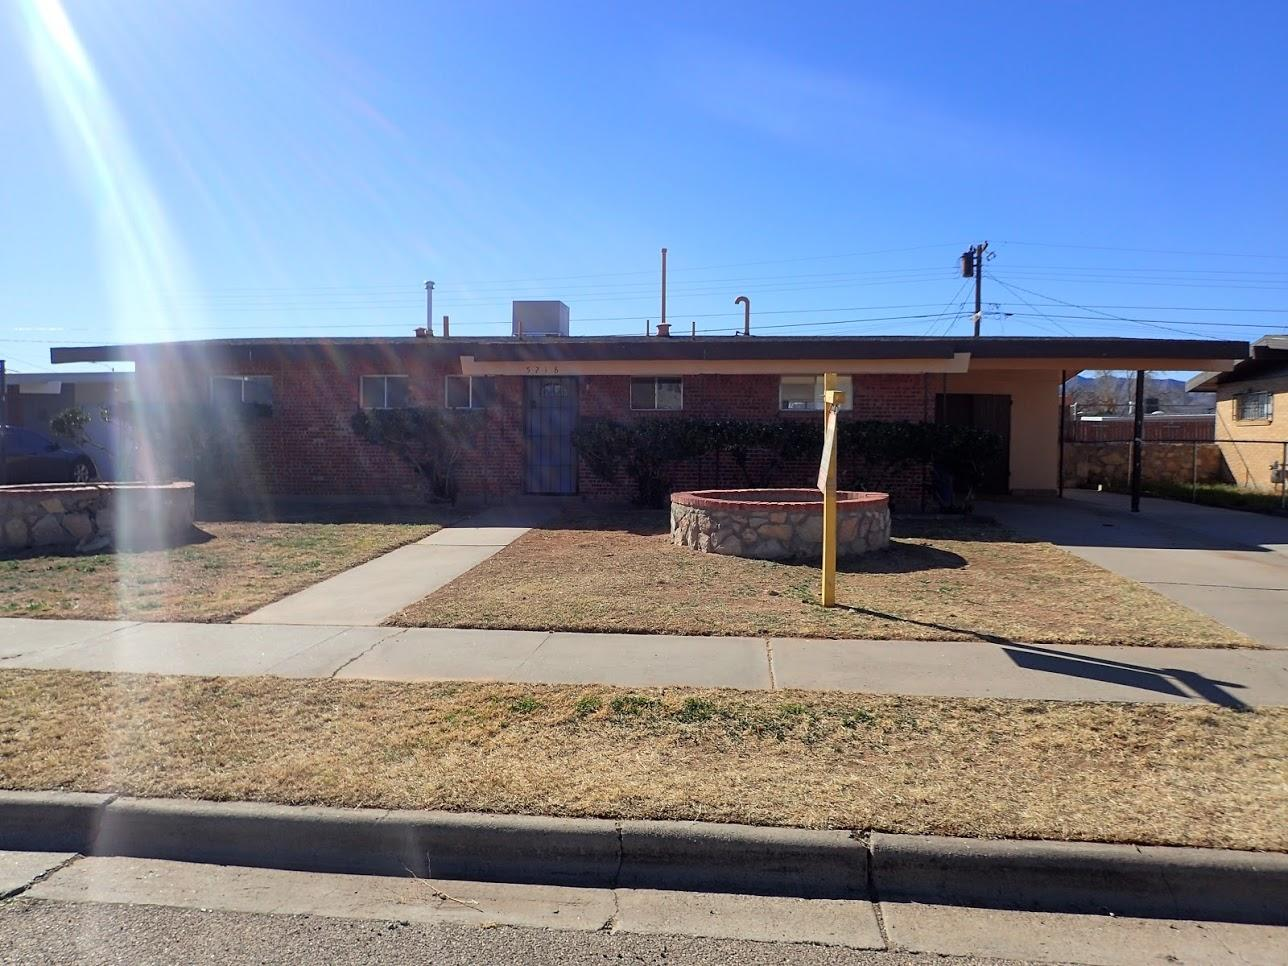 5218 WALLY, El Paso, Texas 79924, 3 Bedrooms Bedrooms, ,2 BathroomsBathrooms,Residential,For sale,WALLY,822165